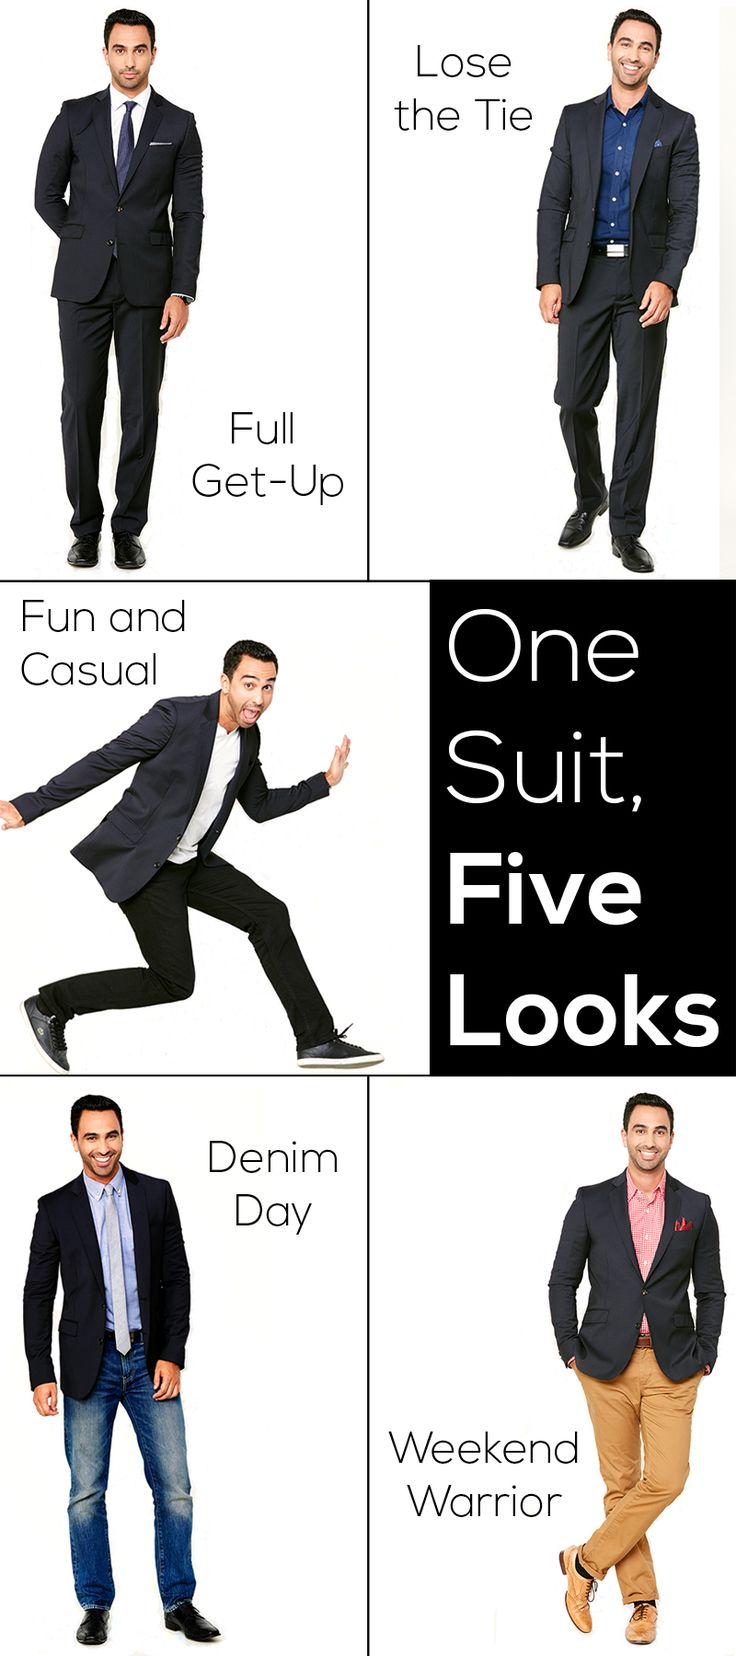 One suite, five looks. #mensfashion #style